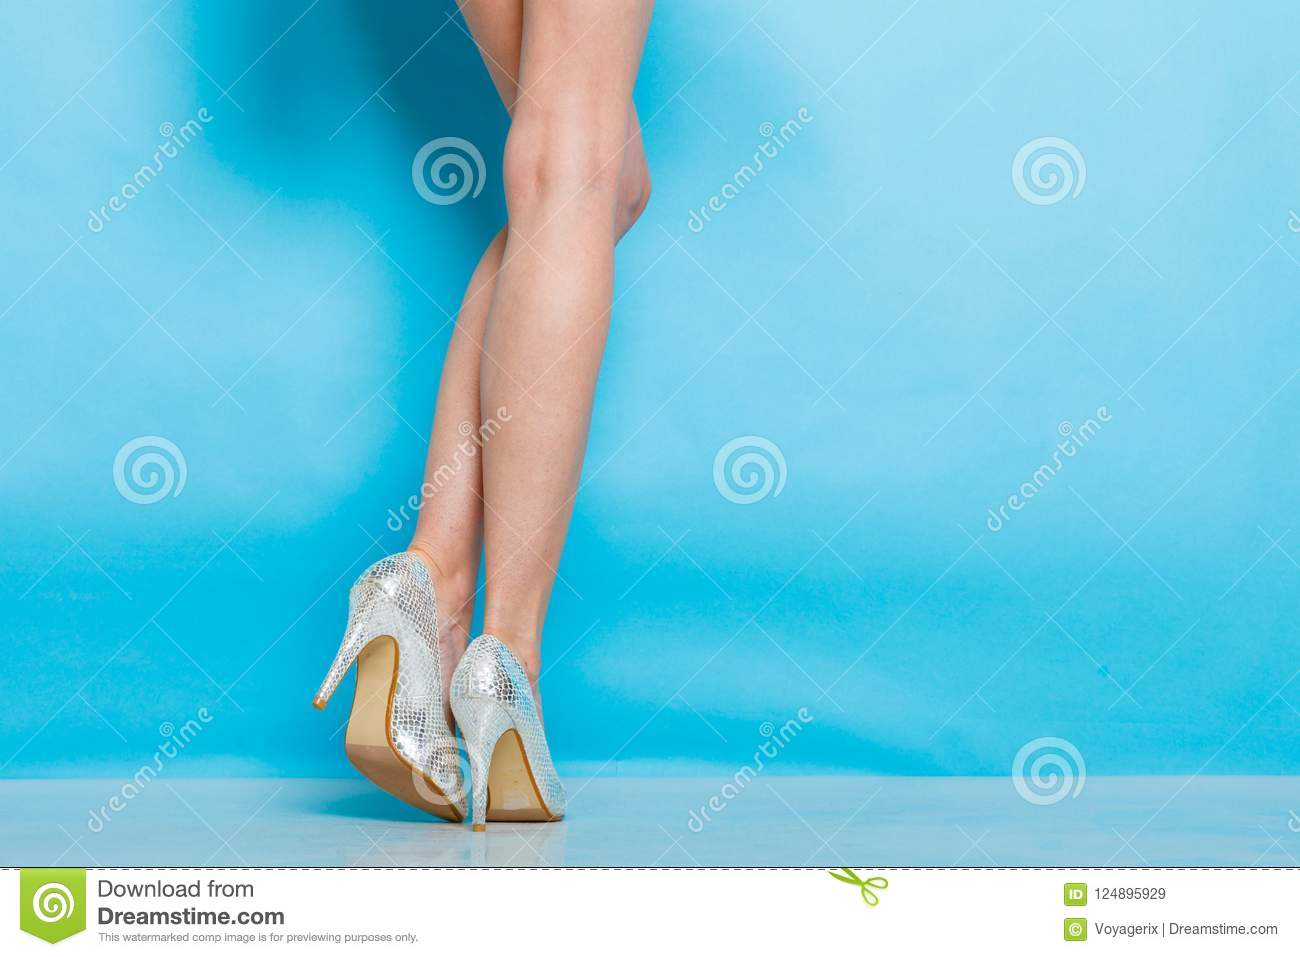 f0e03a32c1 Female fashion. Silver high heels spiked fashionable shoes on long legs.  Studio shot against blue. More similar stock images